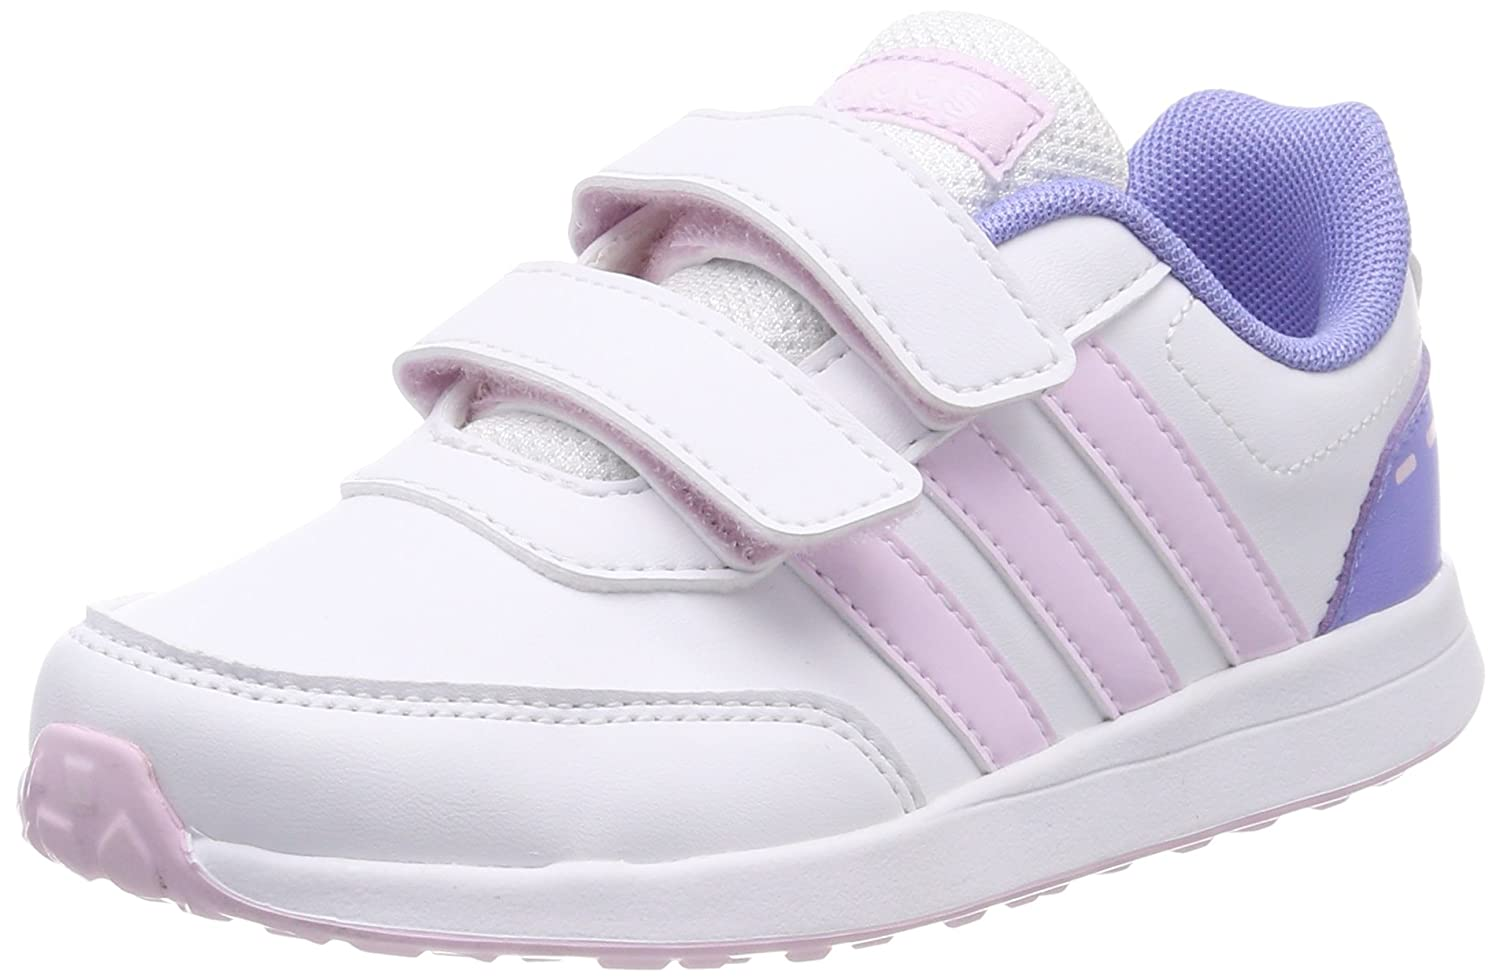 adidas Vs Switch 2 Cmf C, Scarpe Running Unisex – Bambini DB1925